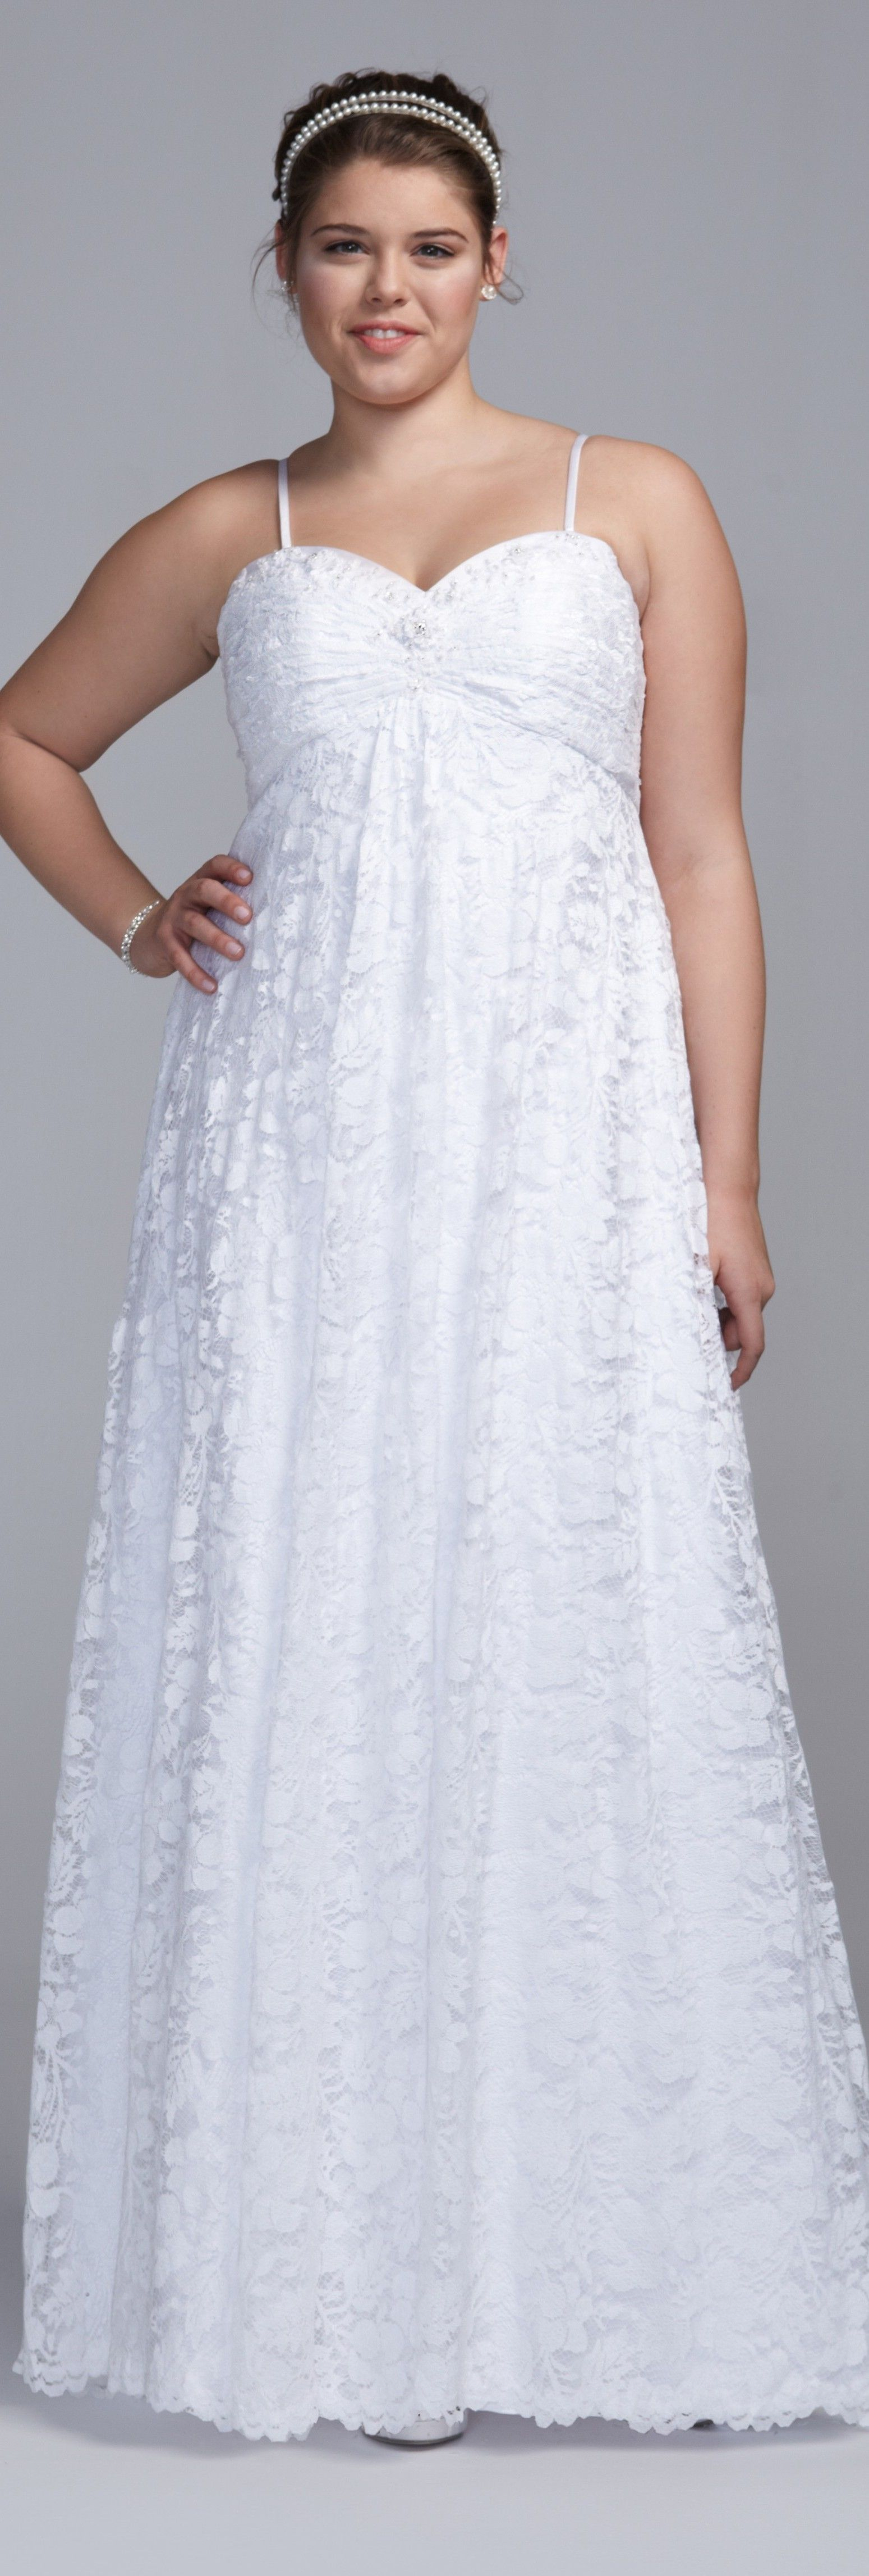 Here 39 s a sexy plus sized wedding dress for hip chicks with for Wedding dresses for large hips